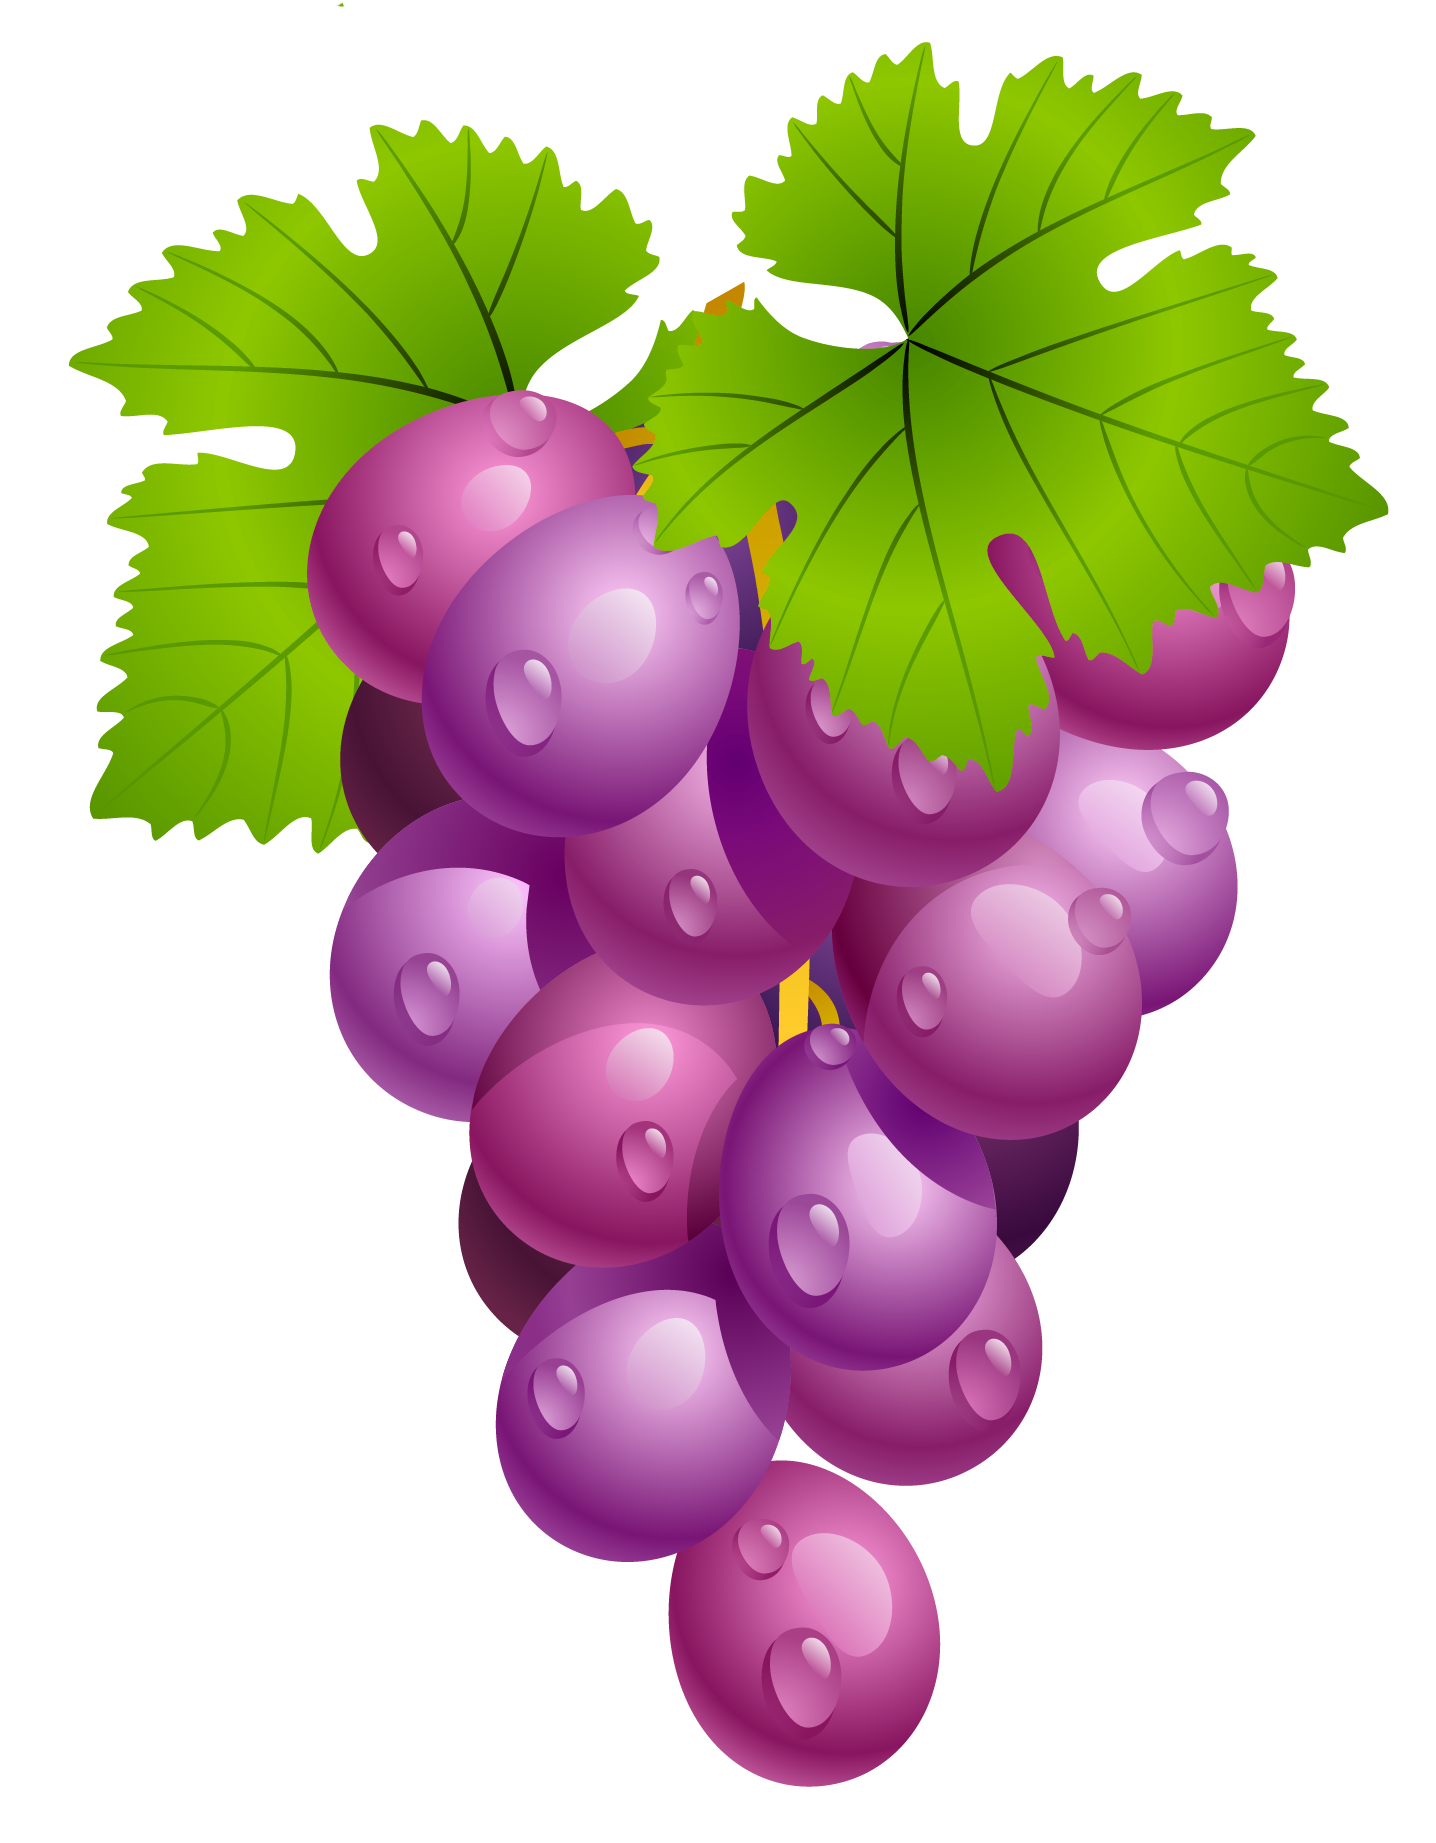 Grapes clipart #17, Download drawings